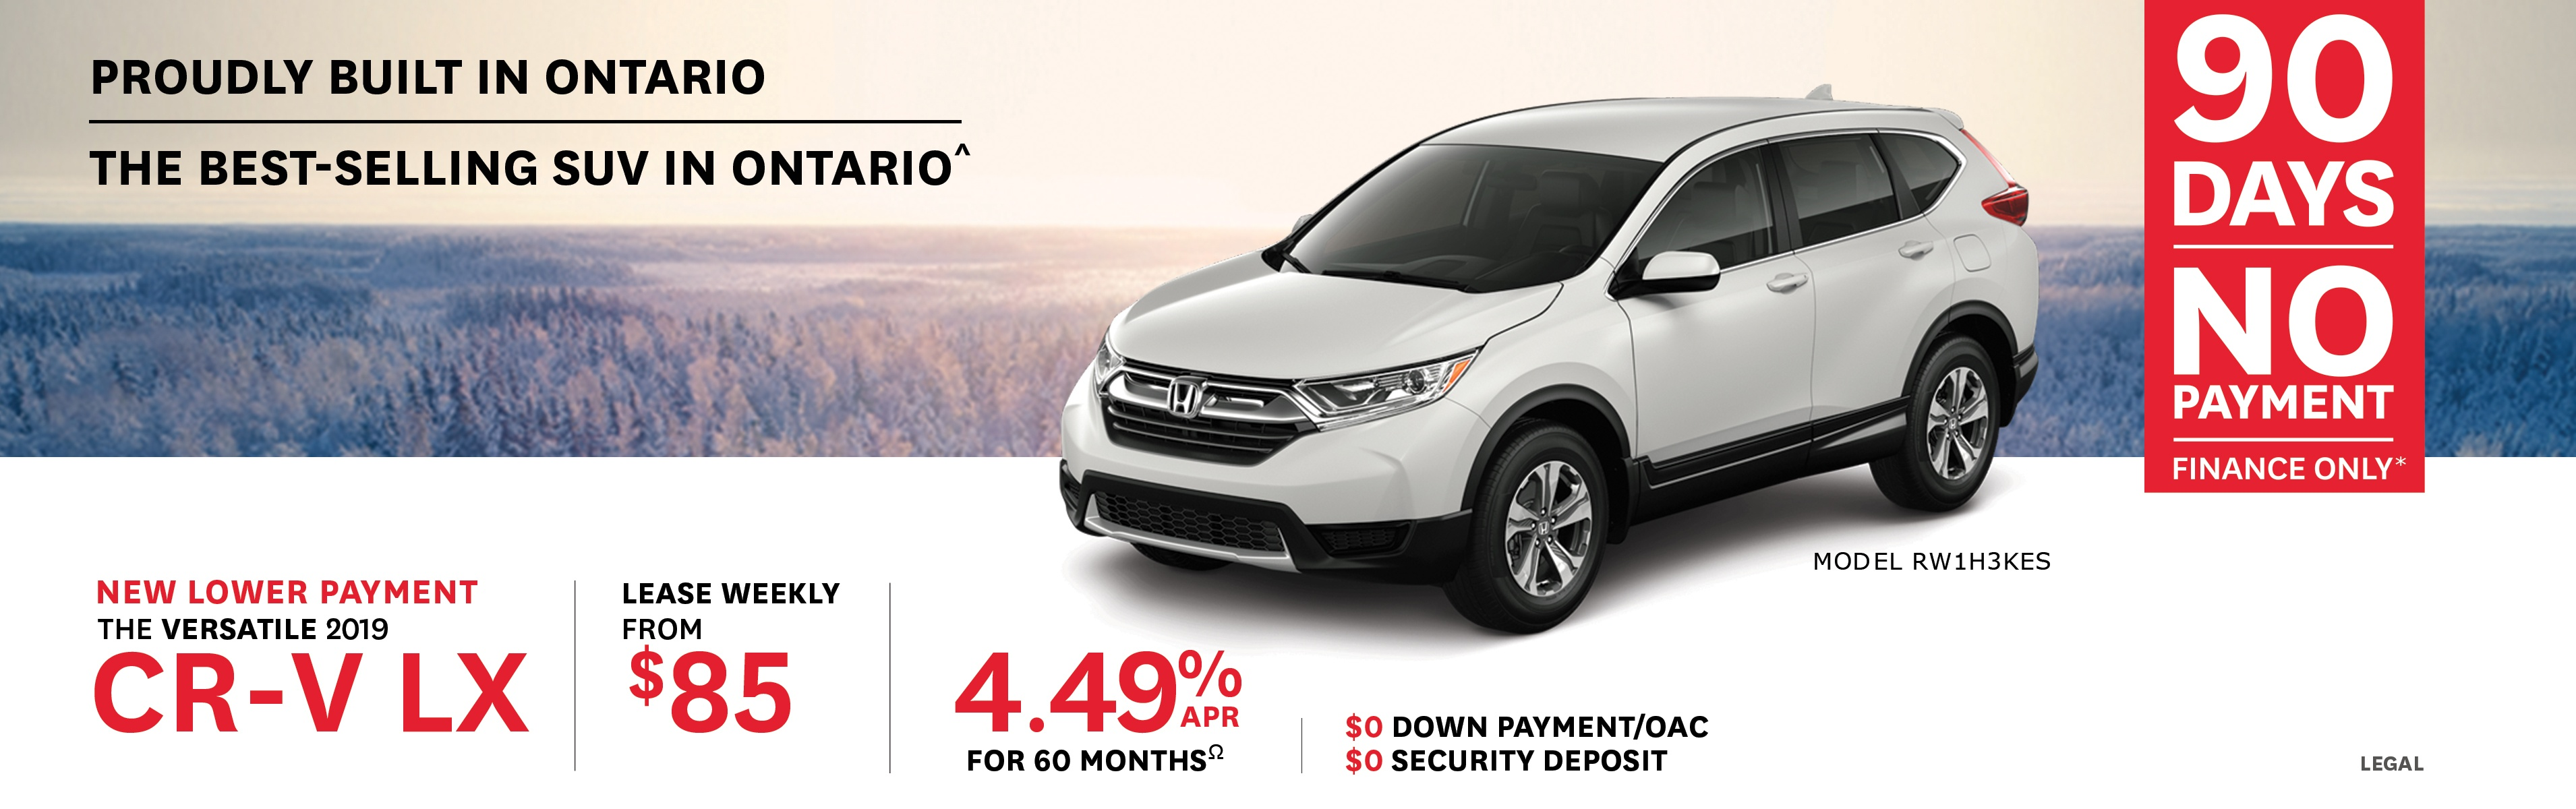 2019 CR-V from $85 Weekly